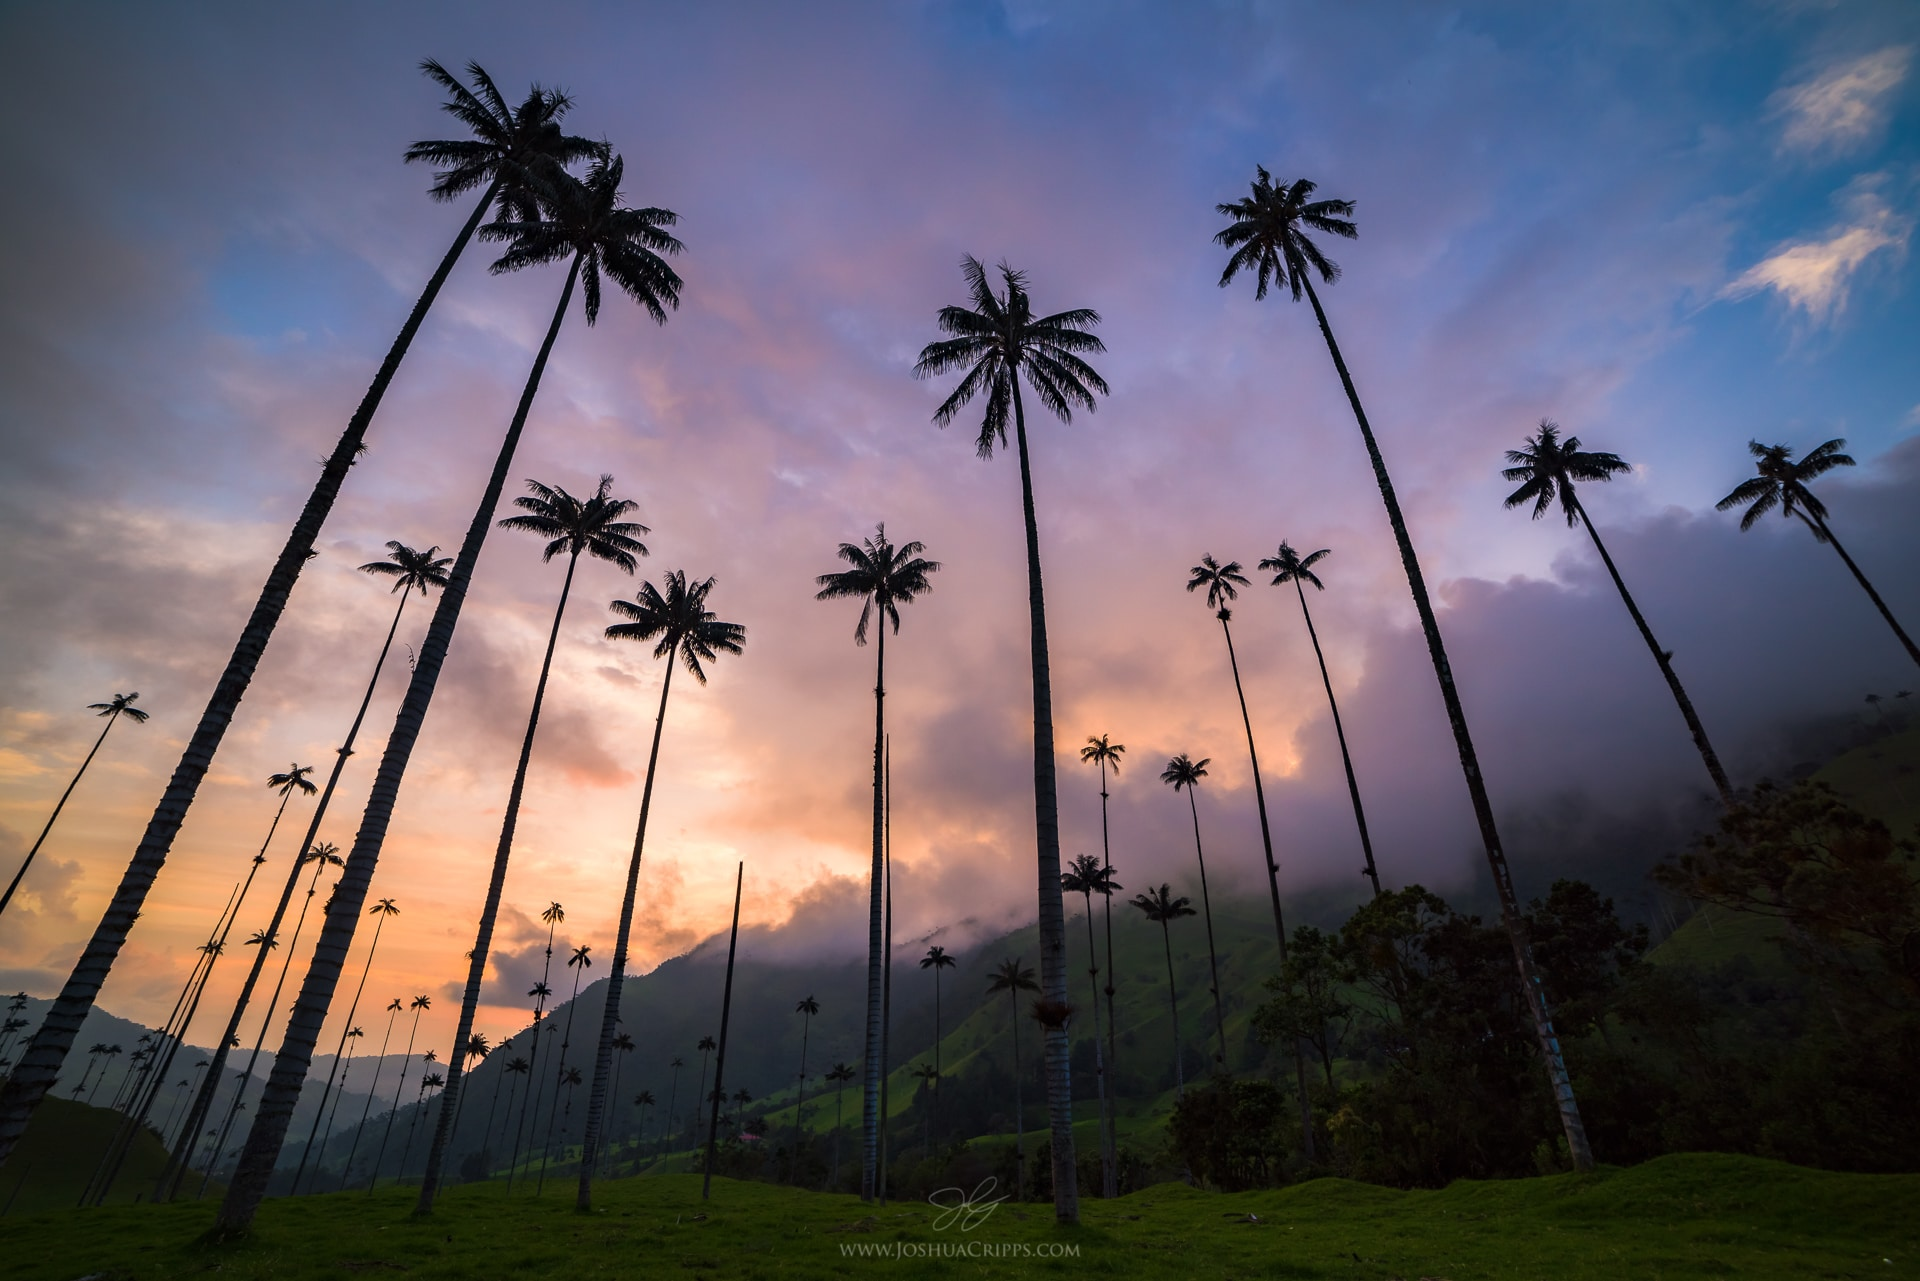 Explore Cocora Valley  -  (Photo credit:    Joshua Cripps   ) -  Most people travel to Salento for the purpose coffee or this: hiking the Valle de Cocora. This National Park is full of these cartoon-like trees. This tree, the Wax Palm, stands at 60 meters high and is the tallest palm tree in the world.